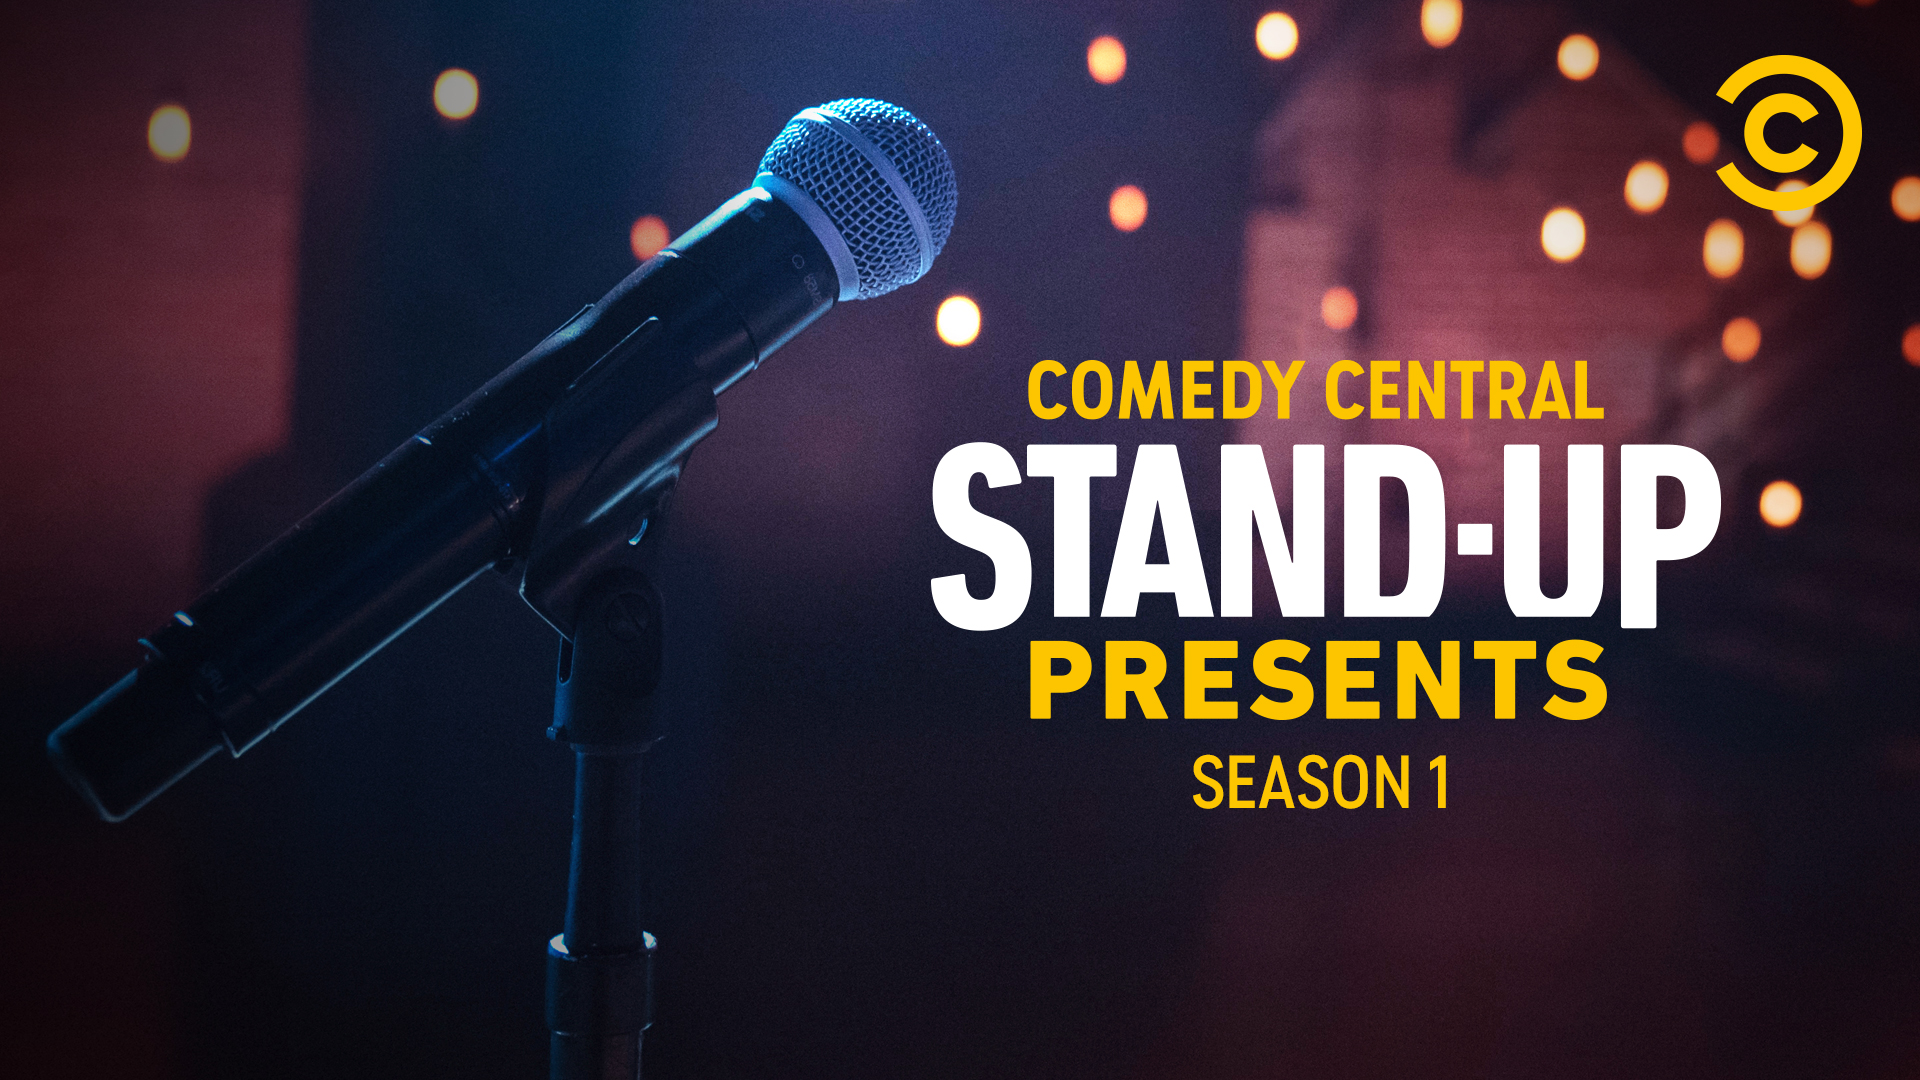 Comedy Central Stand-Up Presents Season 1